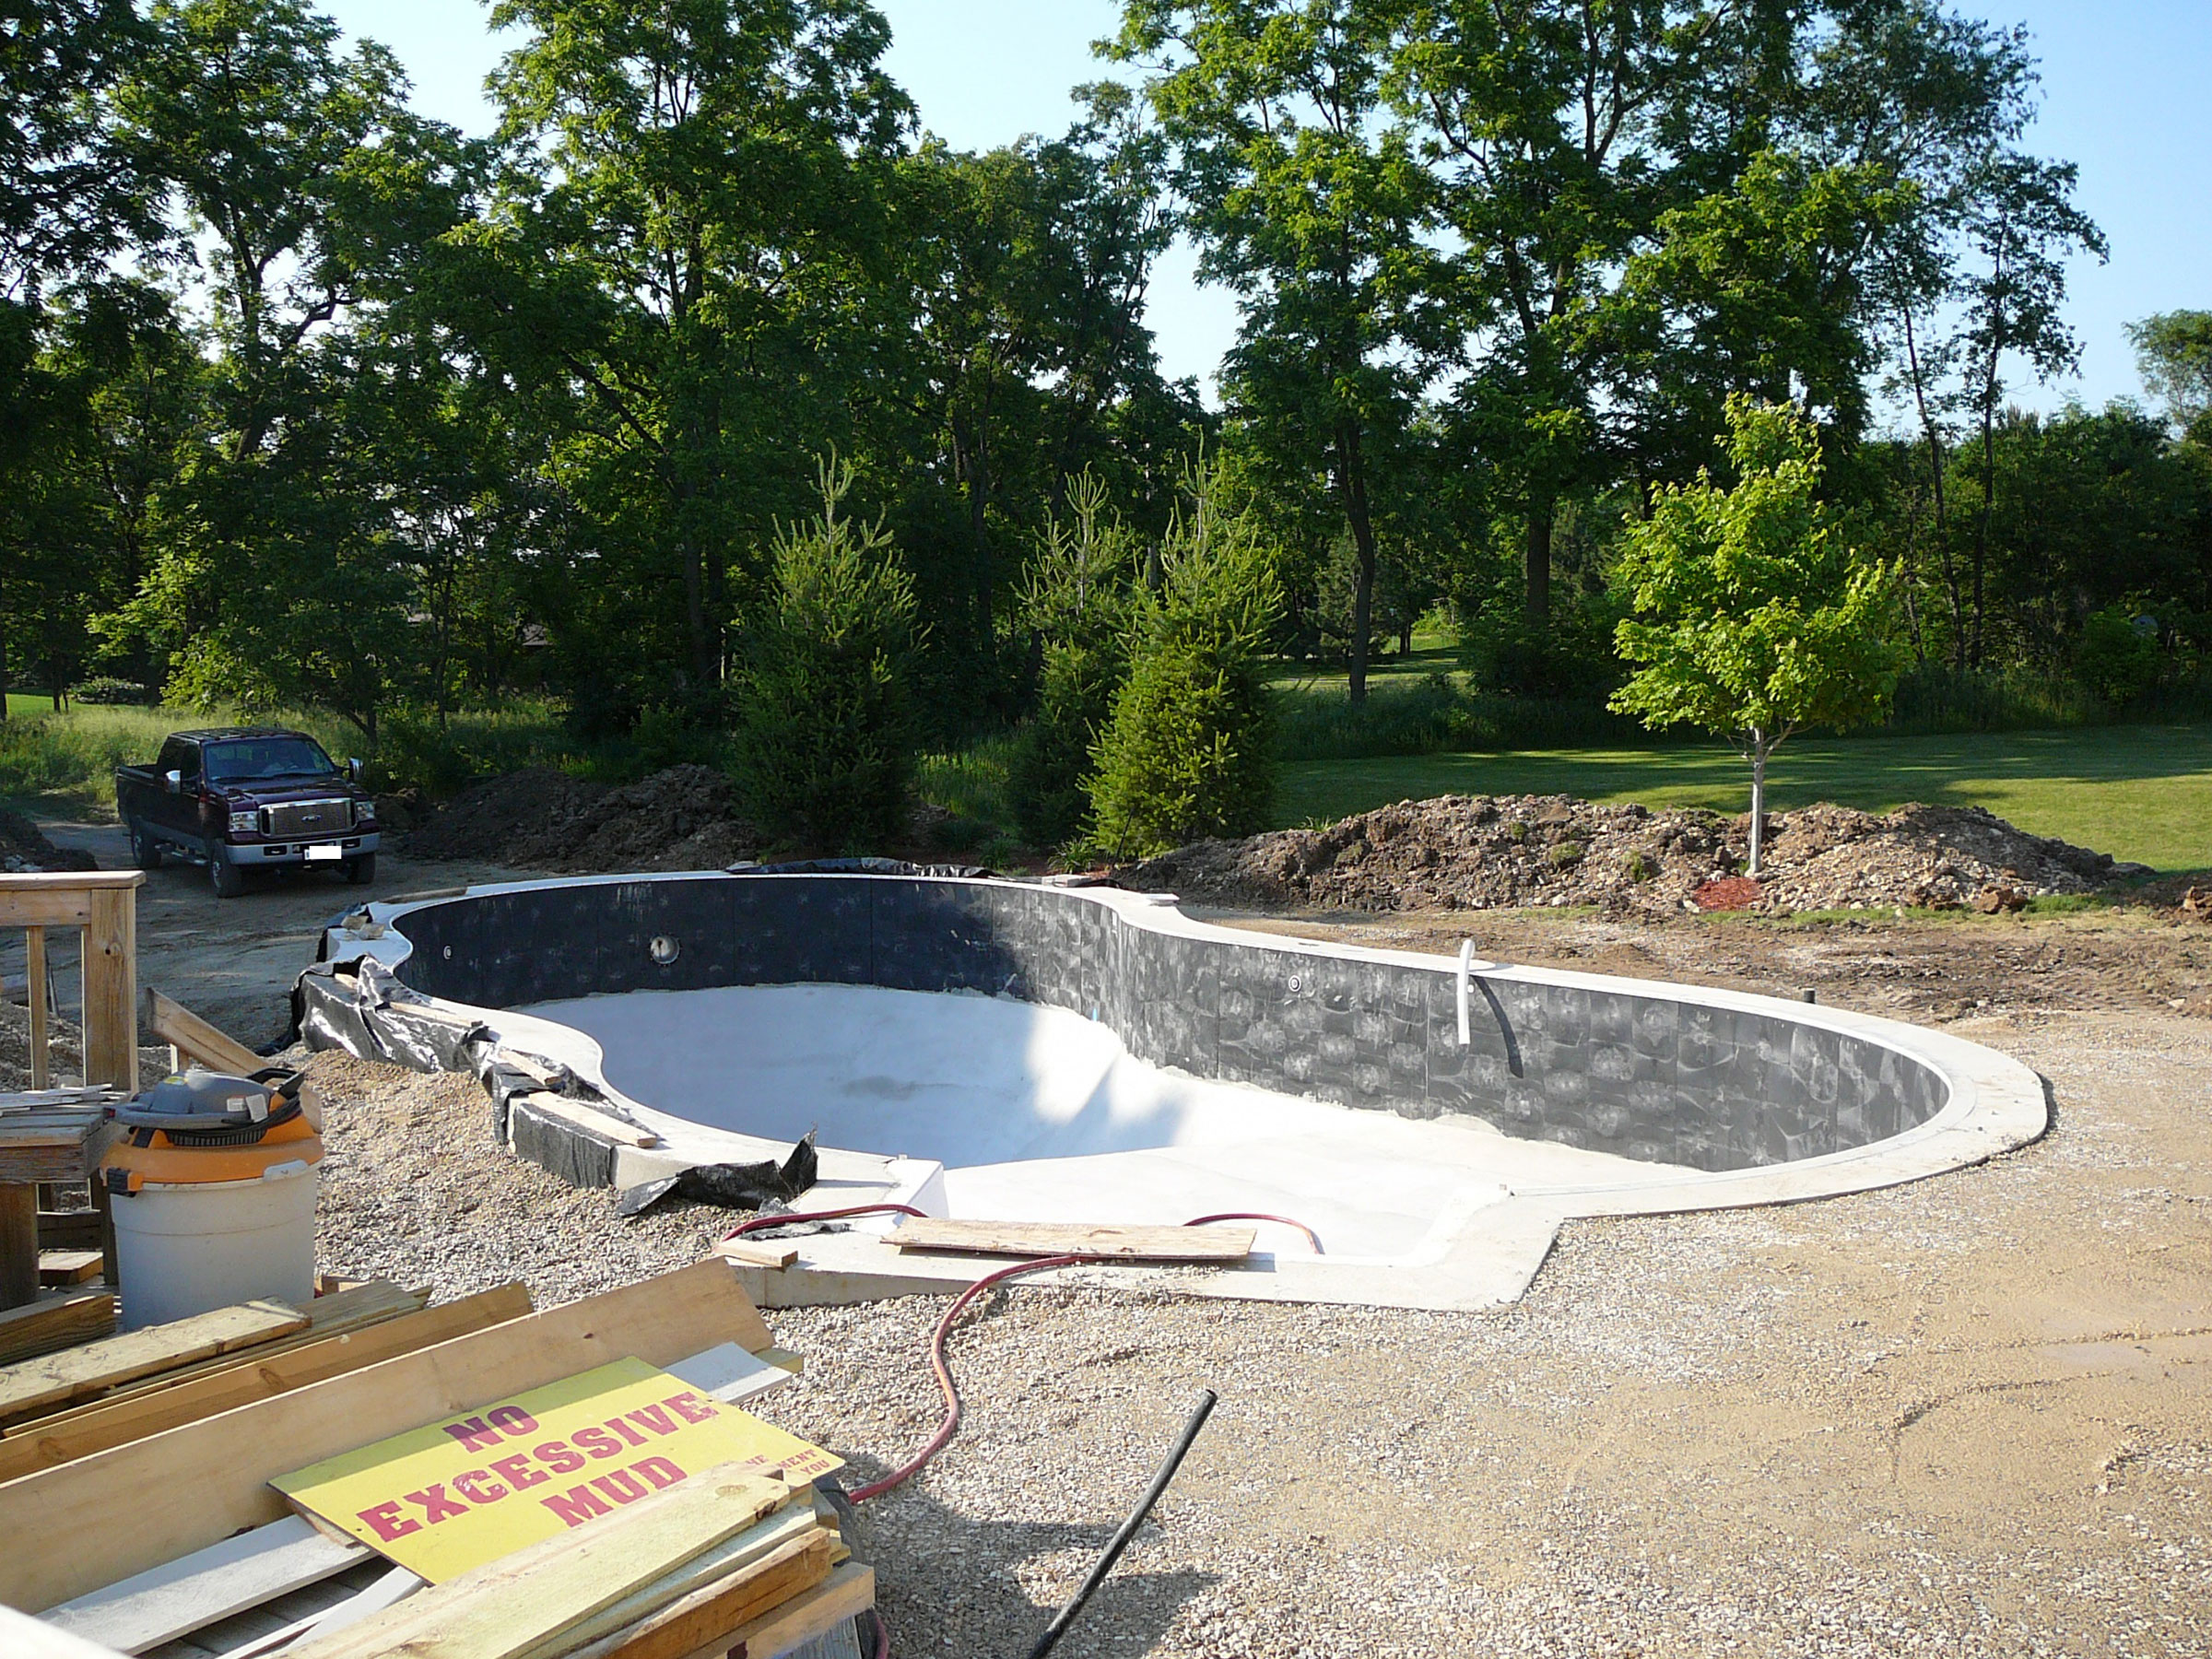 the pool is installed and hardscape excavation begins; trees are planted to provide an intimate and private space